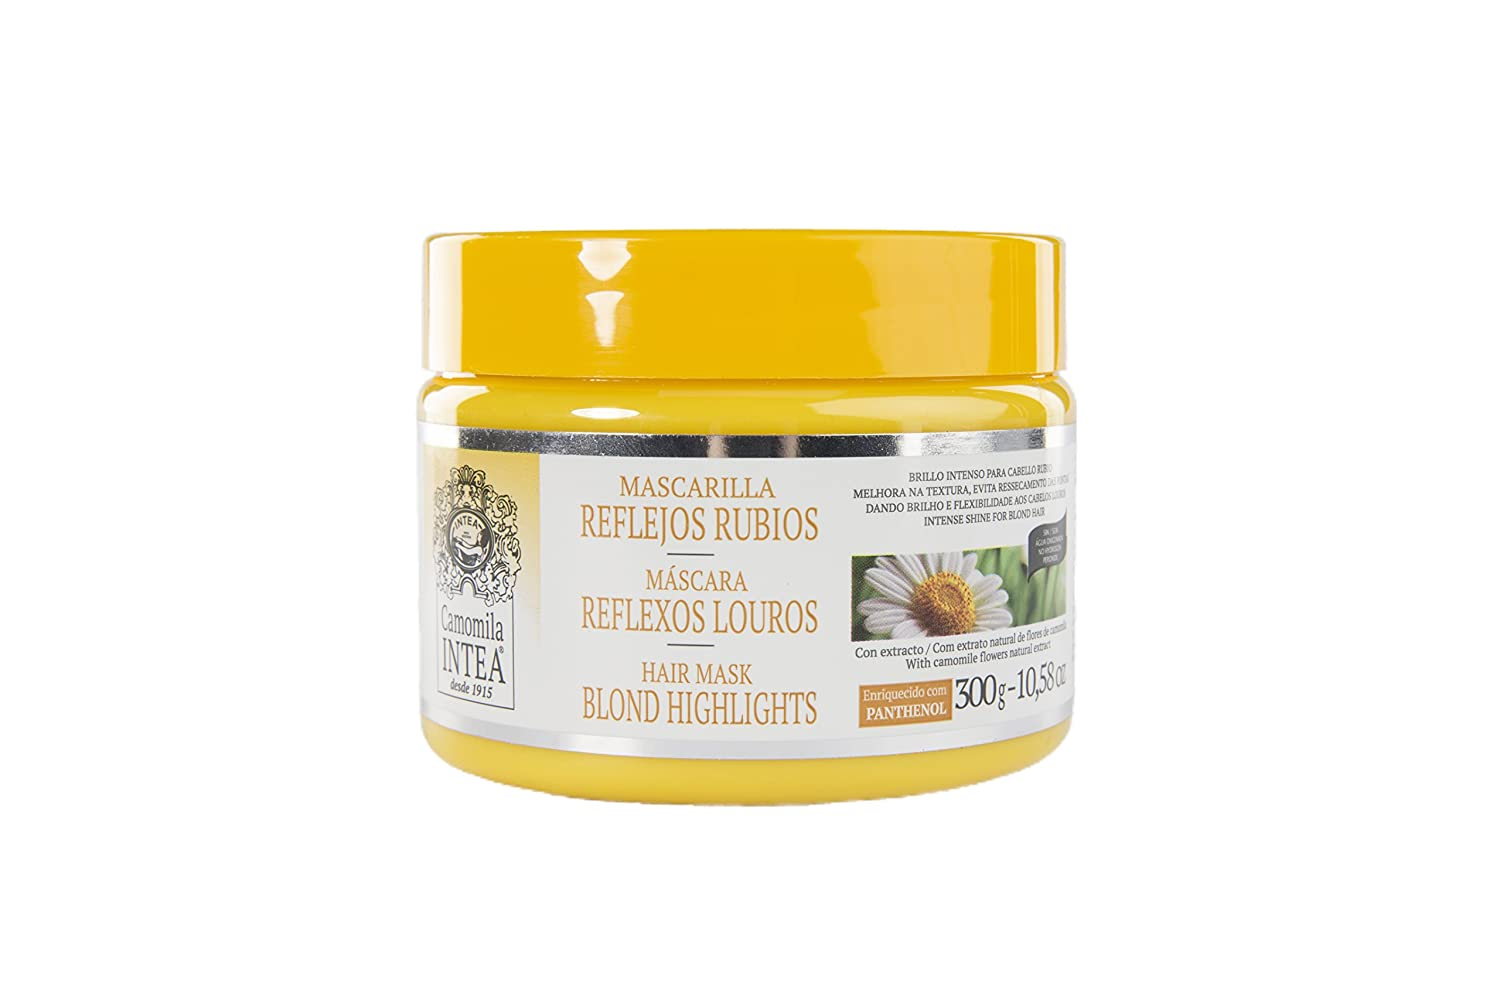 Camomile Intea Blonde Highlights Hair Mask 250g - Moisturising Blonde Hair Mask For Conditioning Dry Damaged Bleached Blonde Hair Camomila Intea 8410895100303